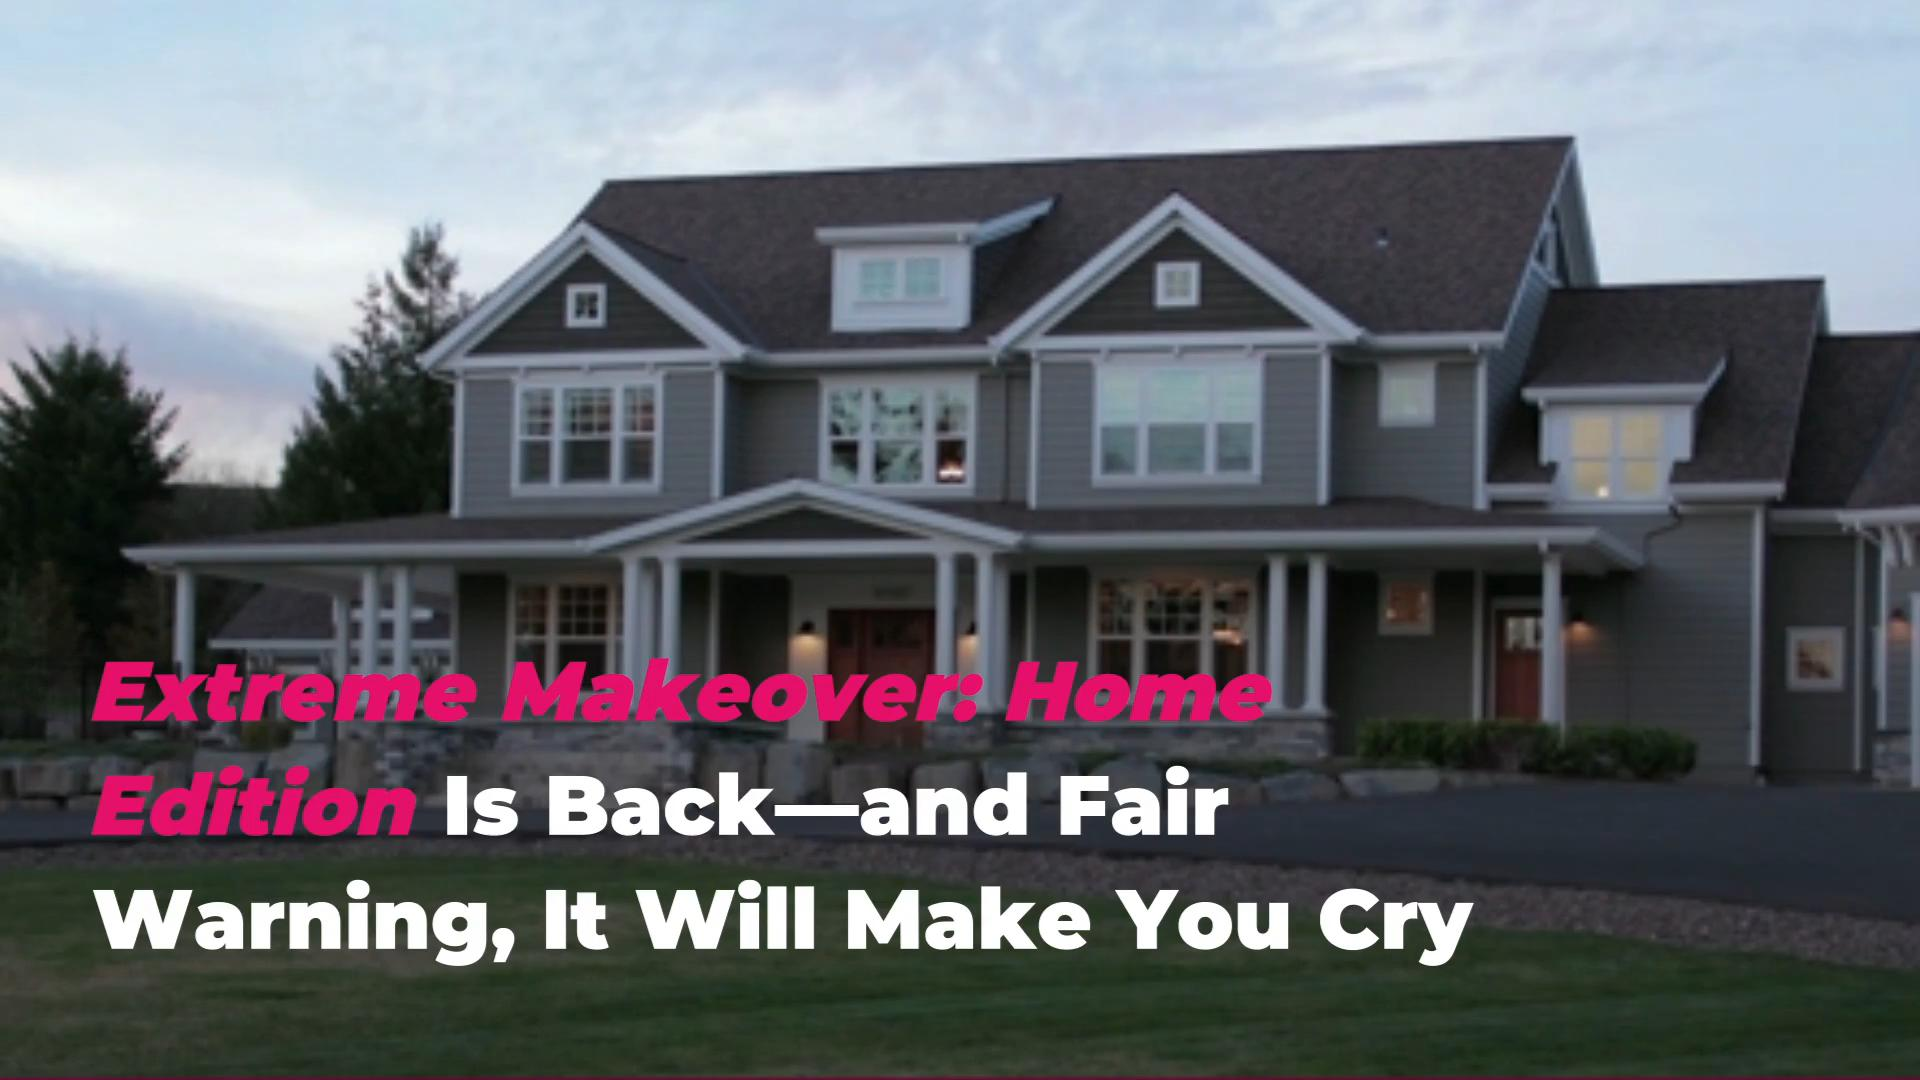 American Home Makeover extreme makeover: home edition is back—and fair warning, it will make you  cry